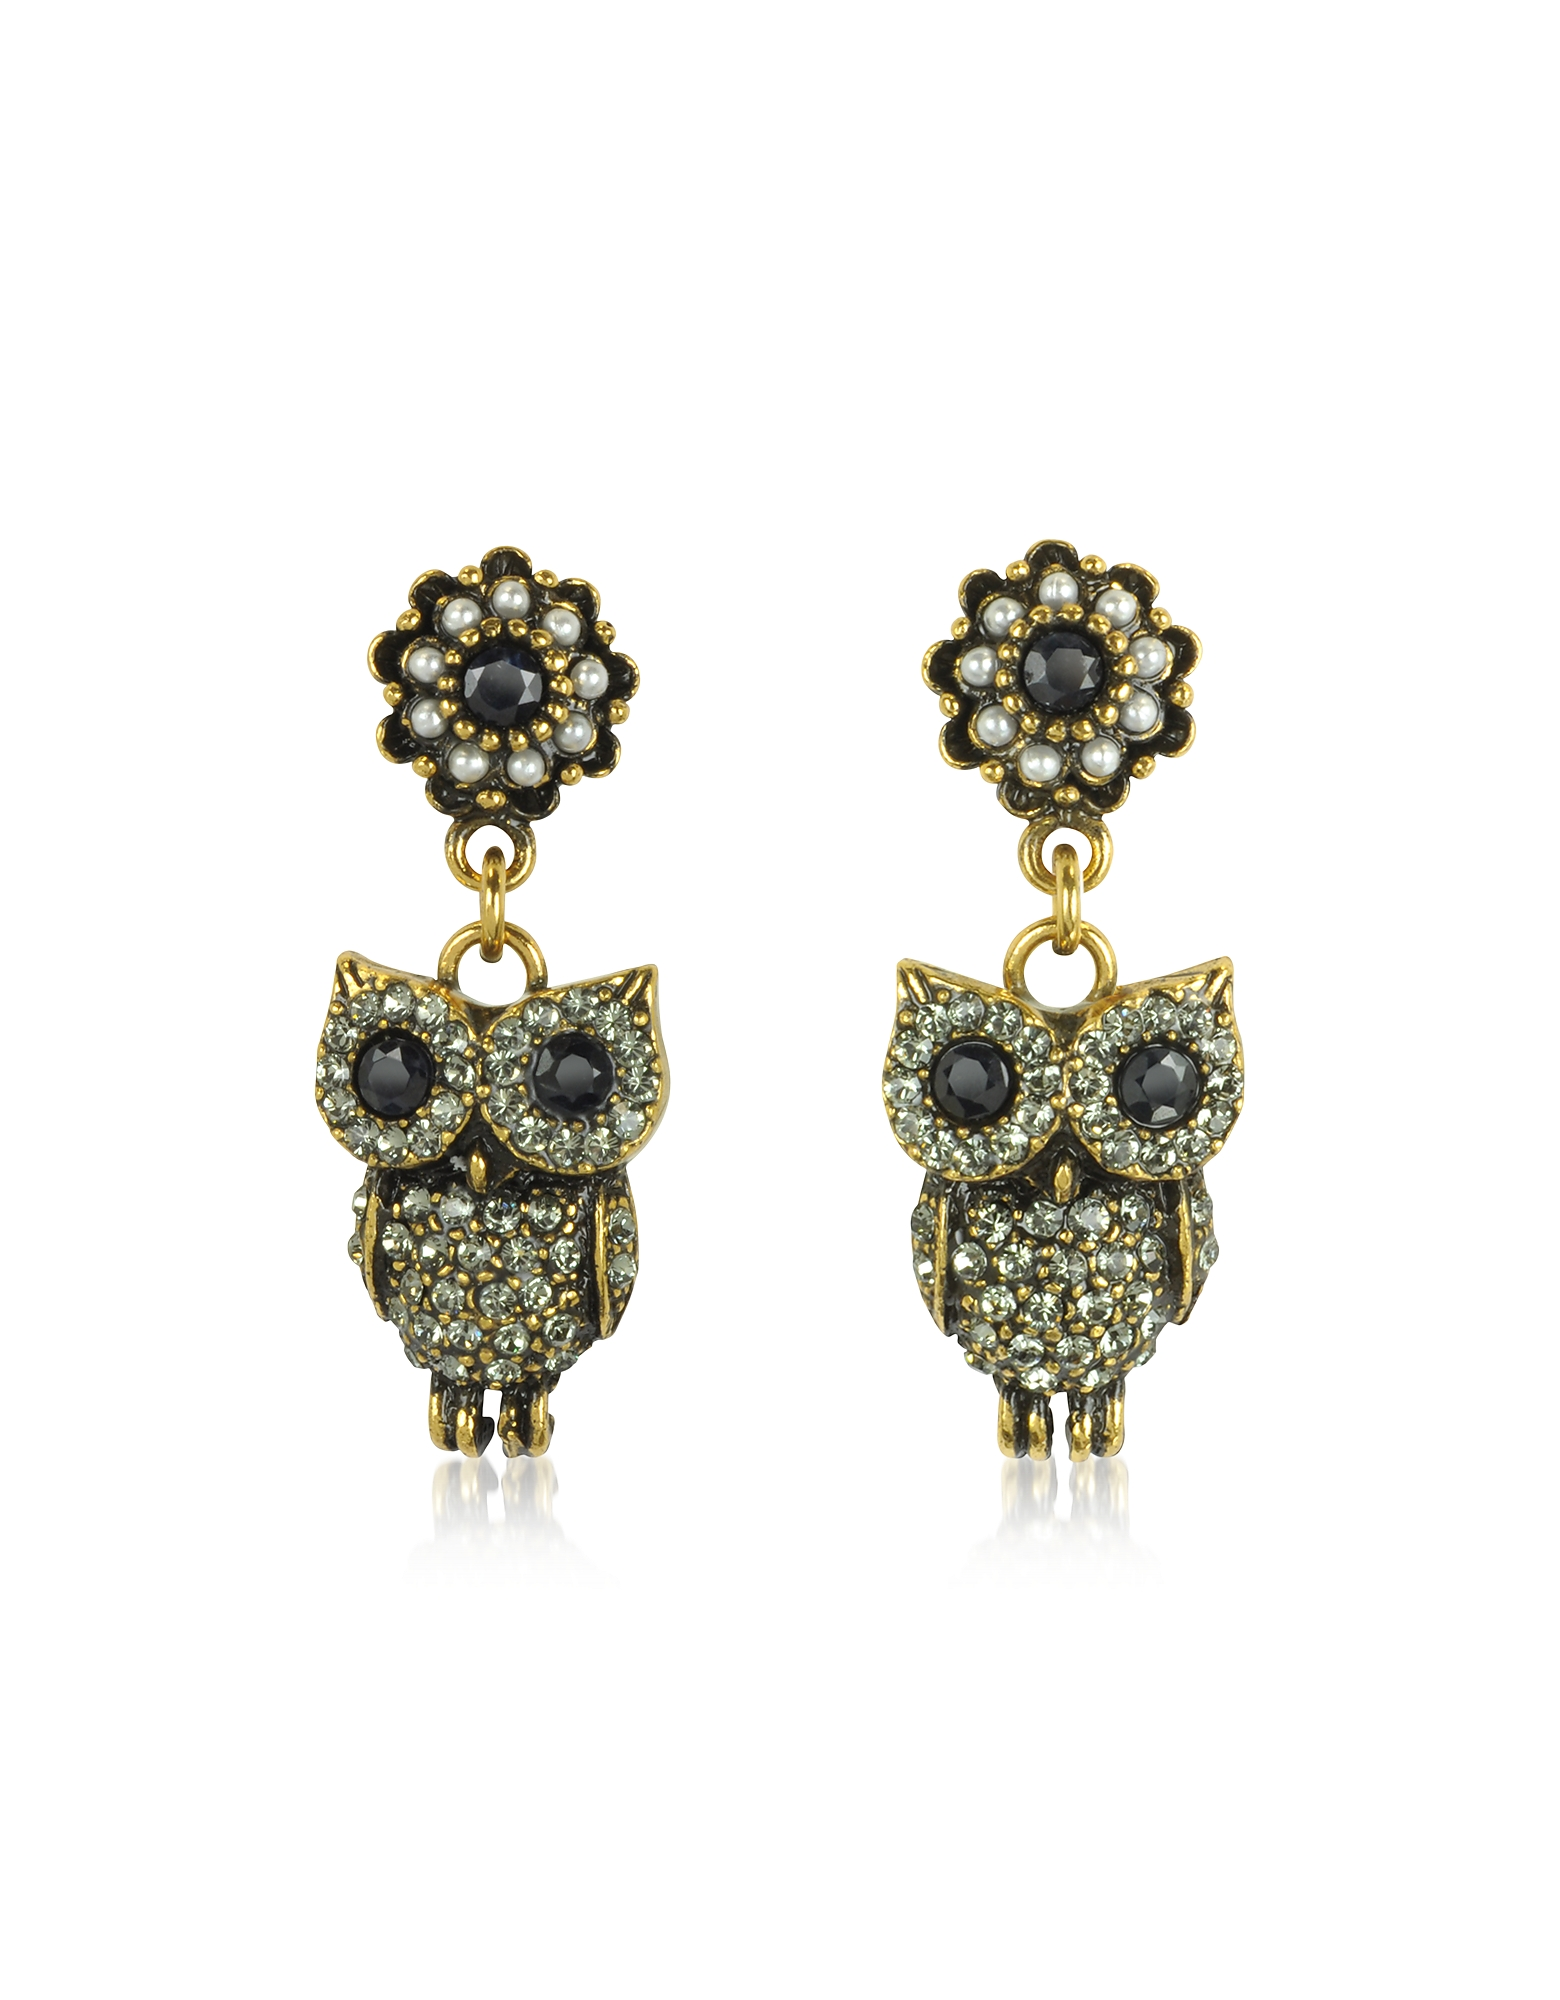 Alcozer & J Earrings, Hanging Goldtone Brass w/Crystals Drop Earrings